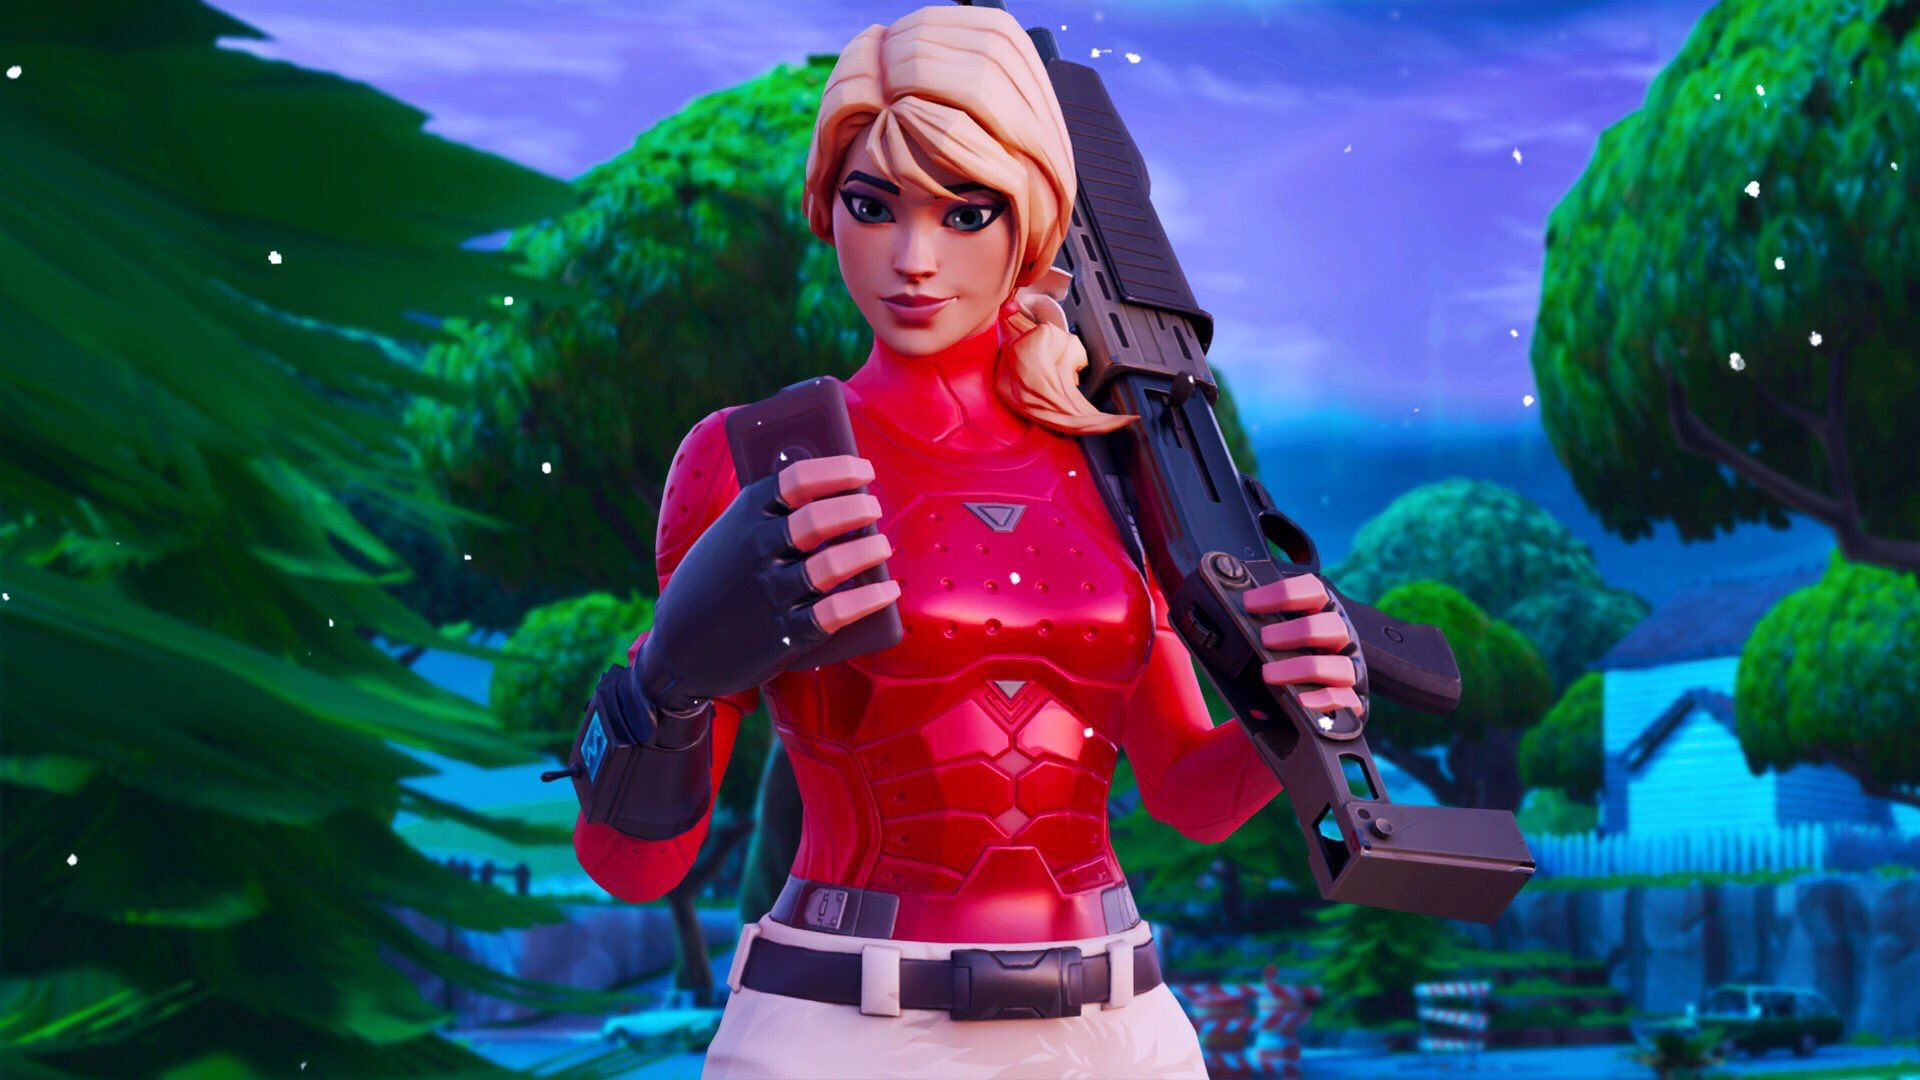 Pin By Isaiah Hutchinson On Fortnite Sfm Gaming Wallpapers Best Gaming Wallpapers Game Wallpaper Iphone